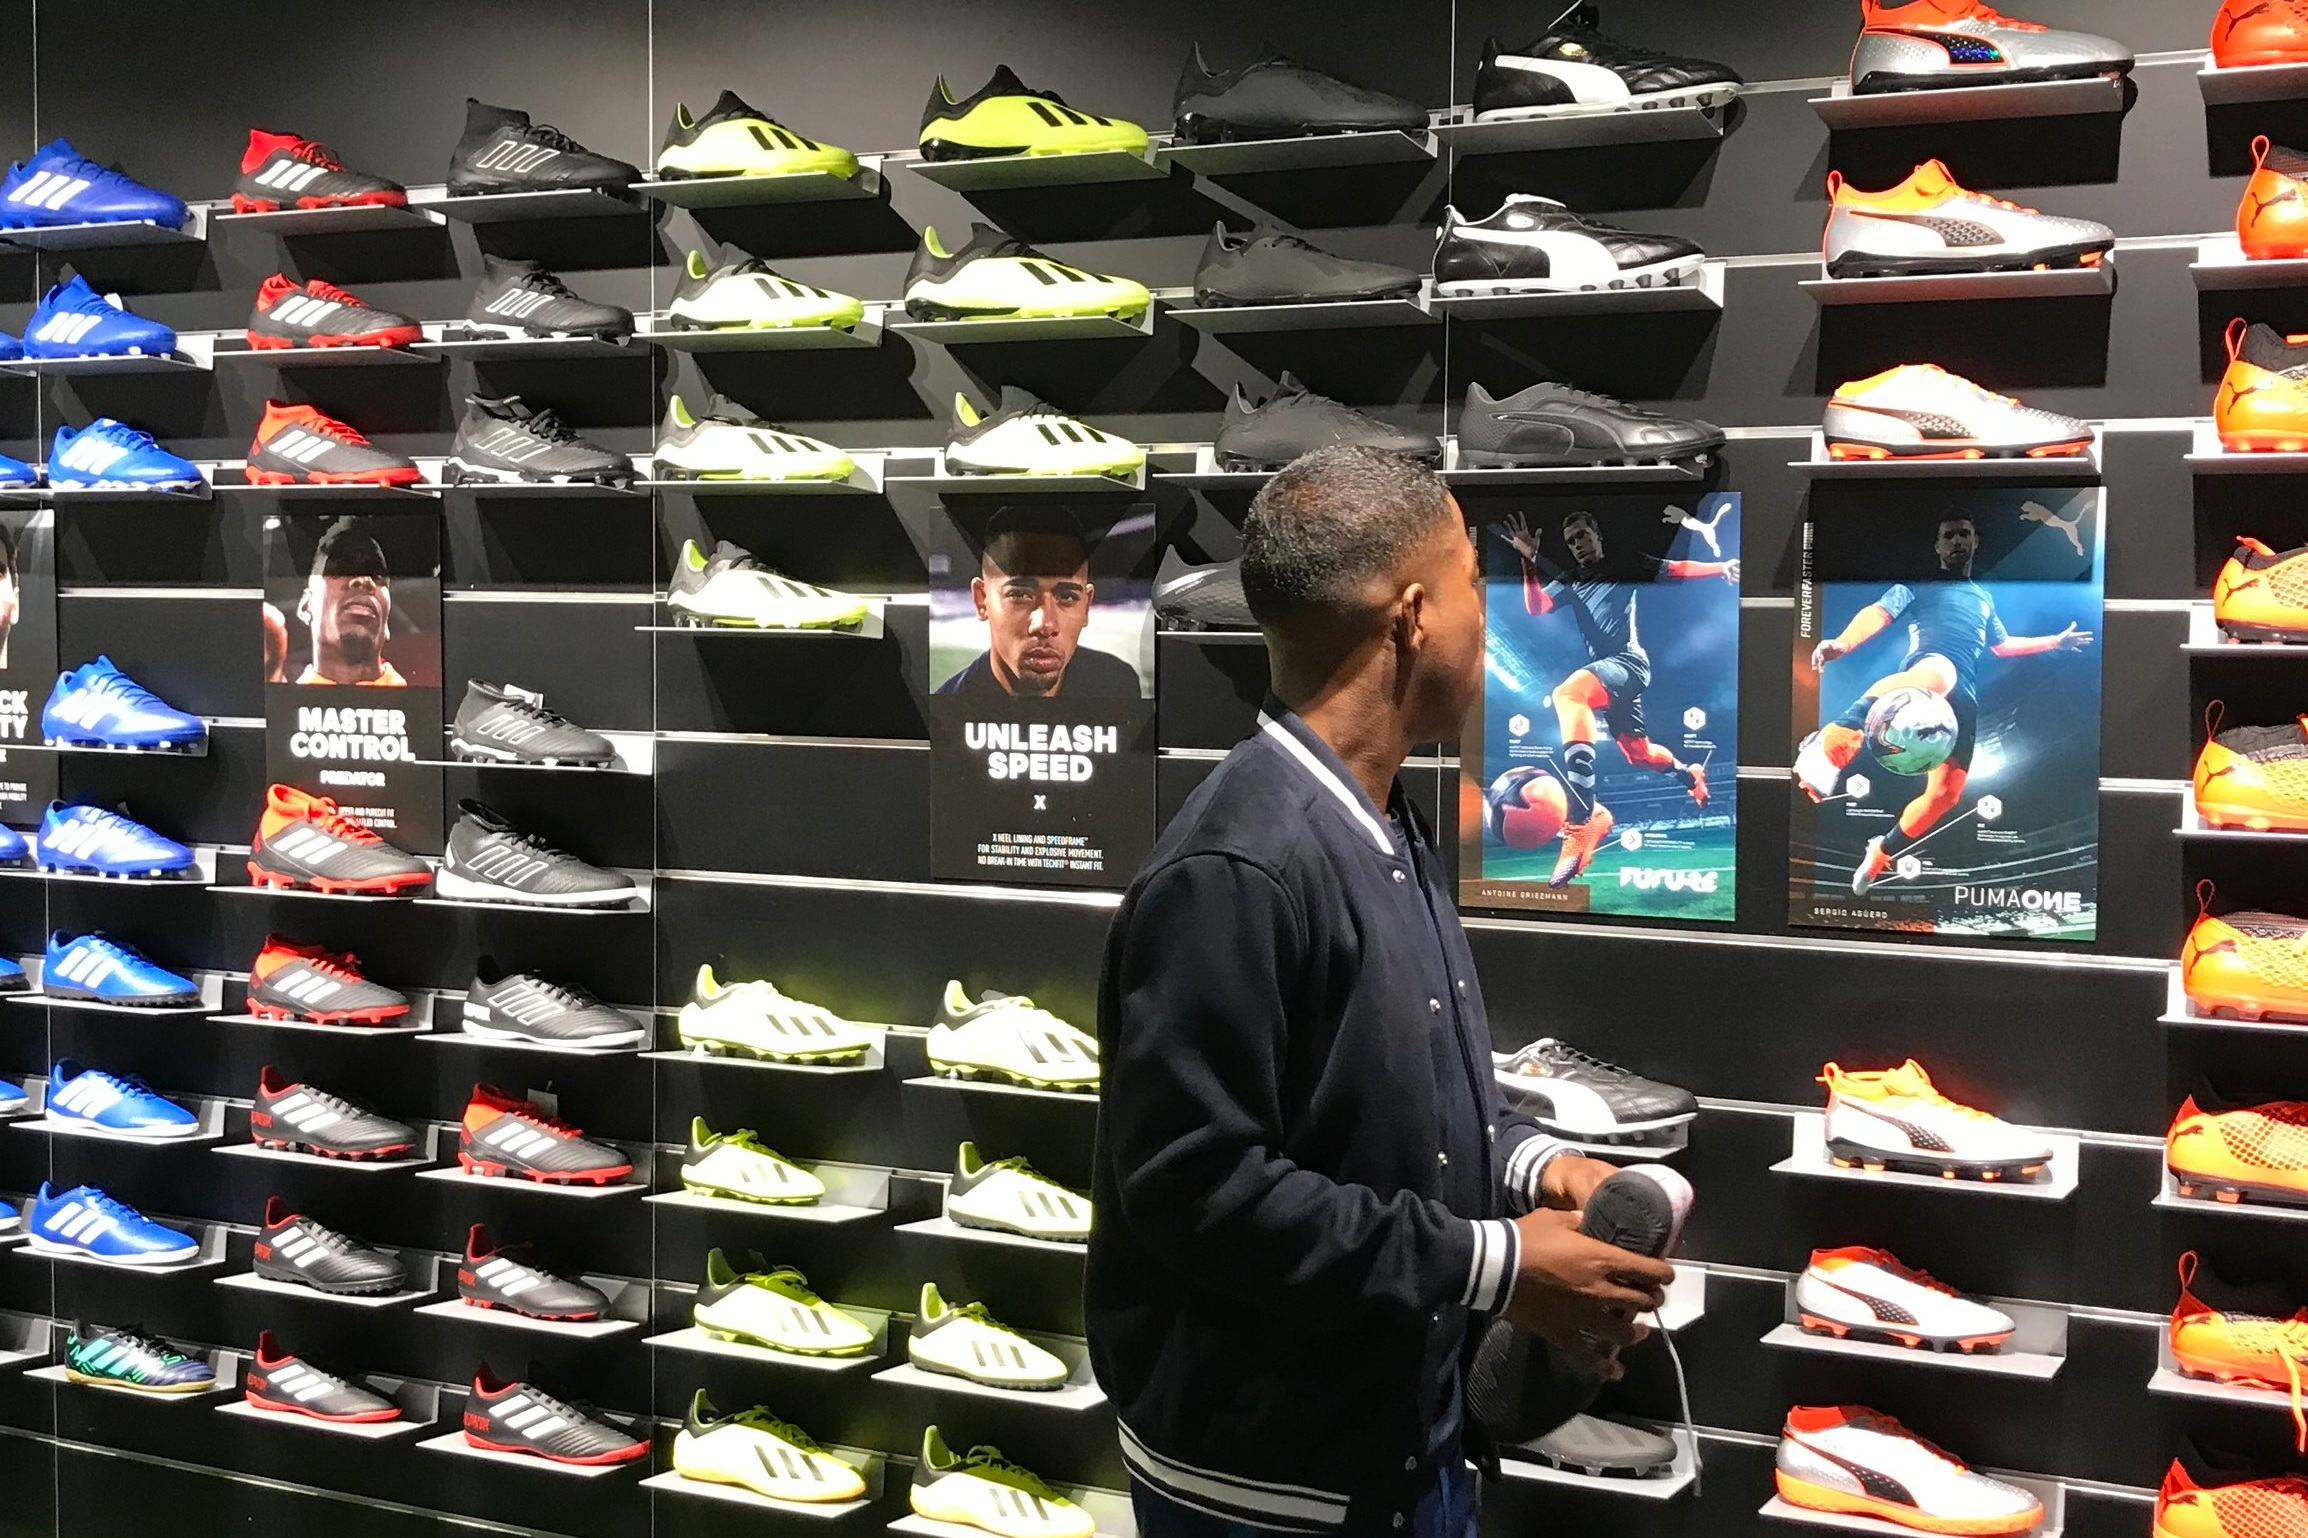 Connecting Intersport with the Nike athlete of the future. - Nike & Intersport